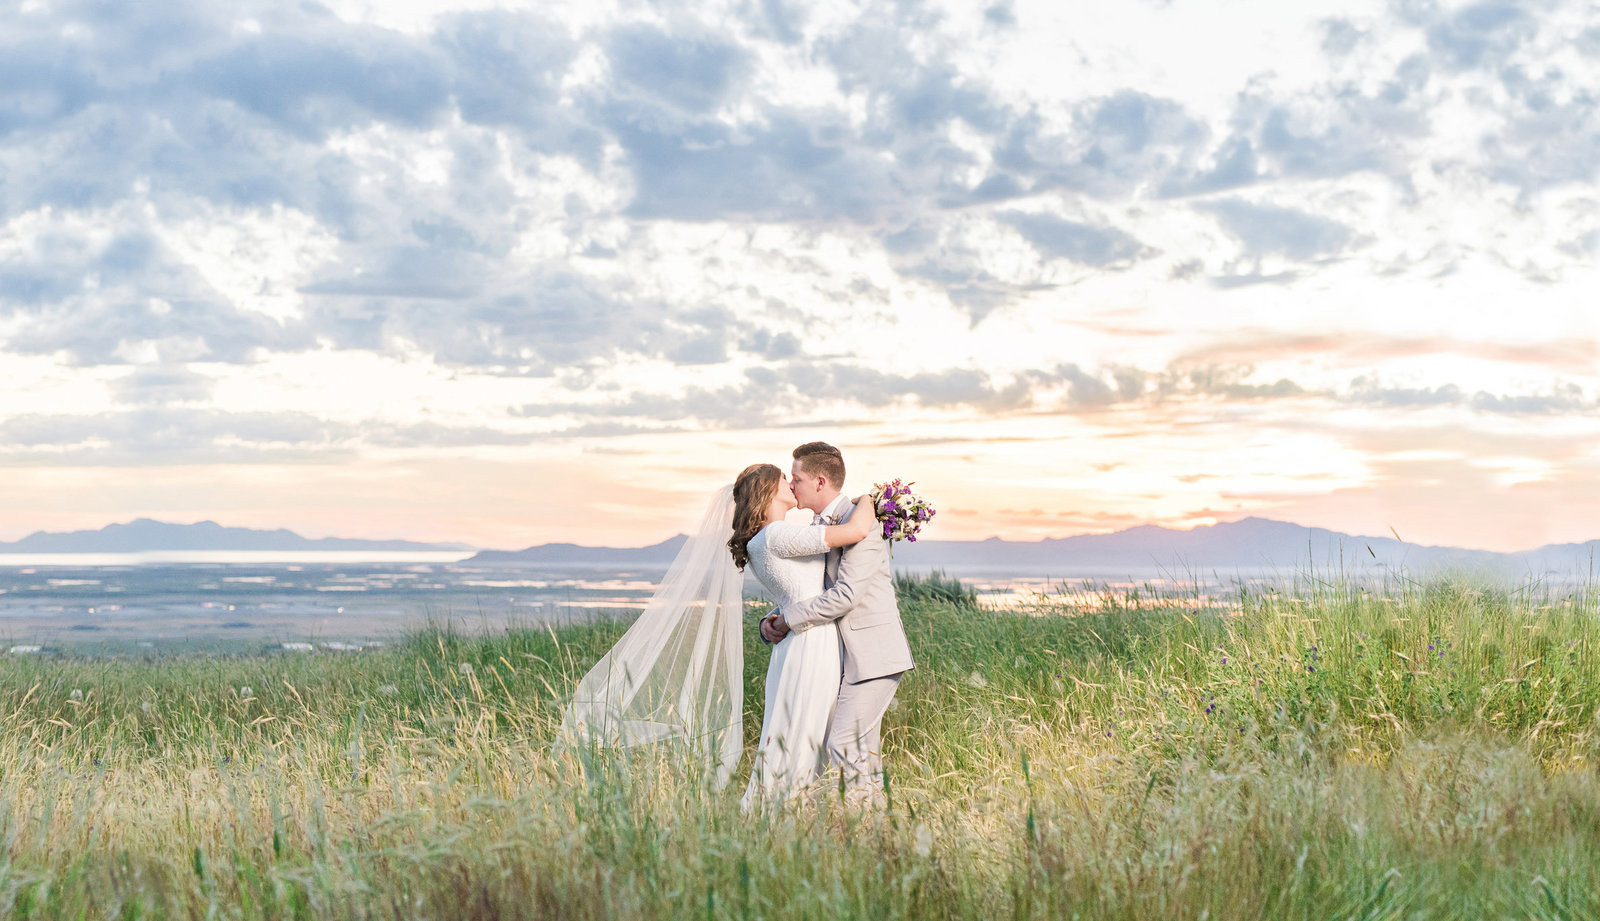 Utah Wedding Photographers - Jessie and Dallin Photography RE-2-2 COVER